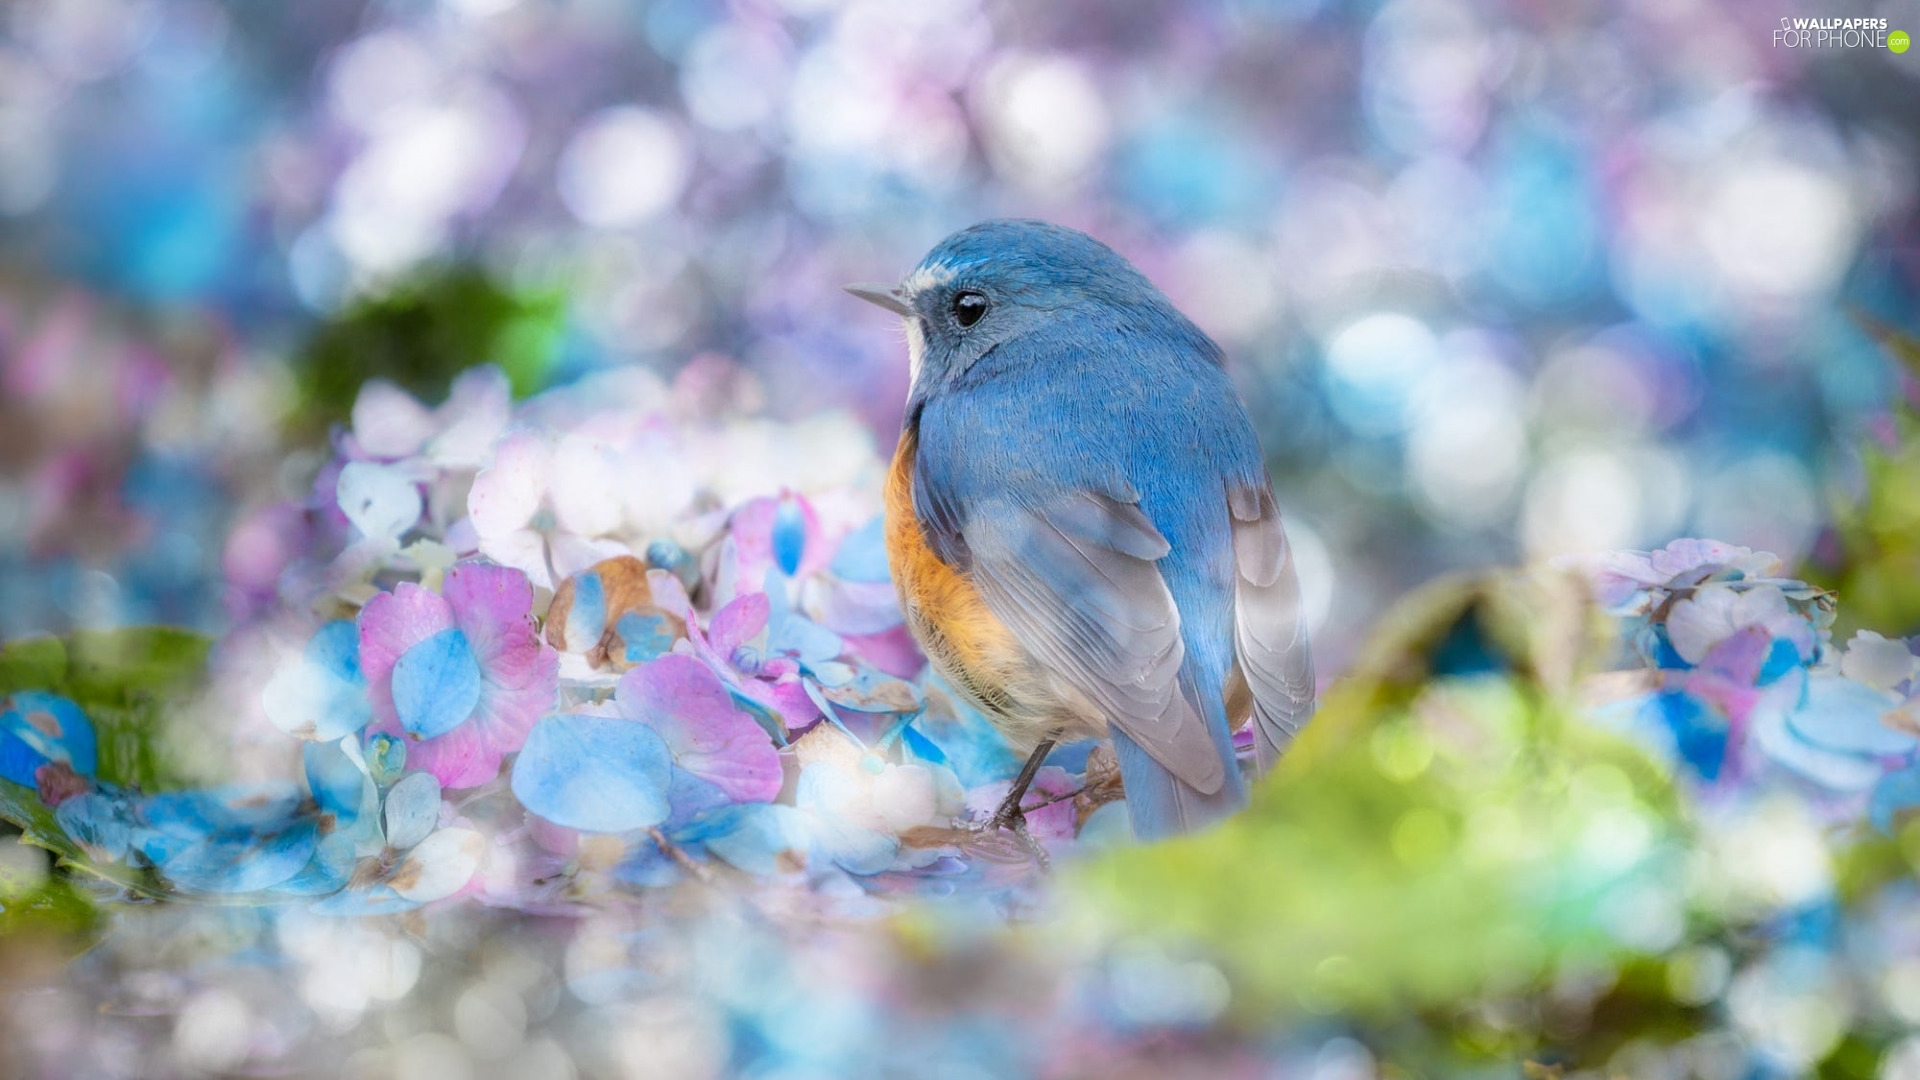 hydrangea, blur, Red-flanked Bluetail, Flowers, Bird